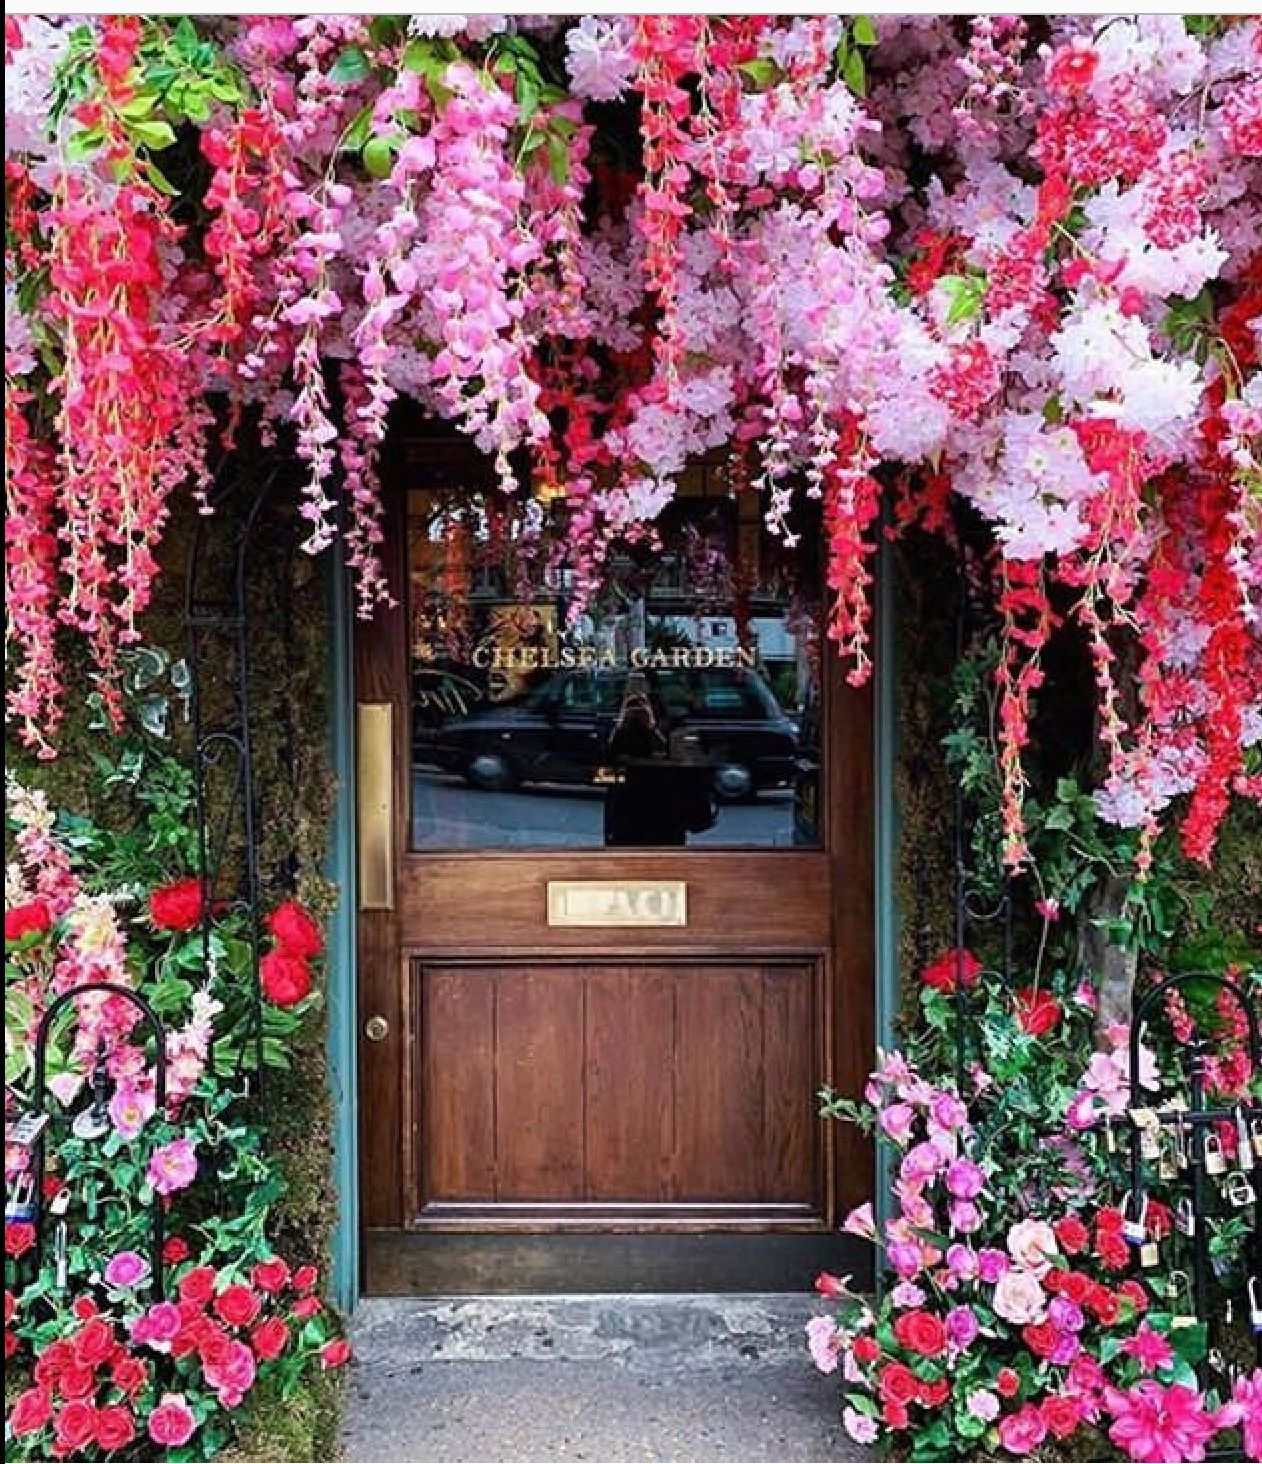 Pin by Susan Cramer on Doors Chelsea garden, The ivy